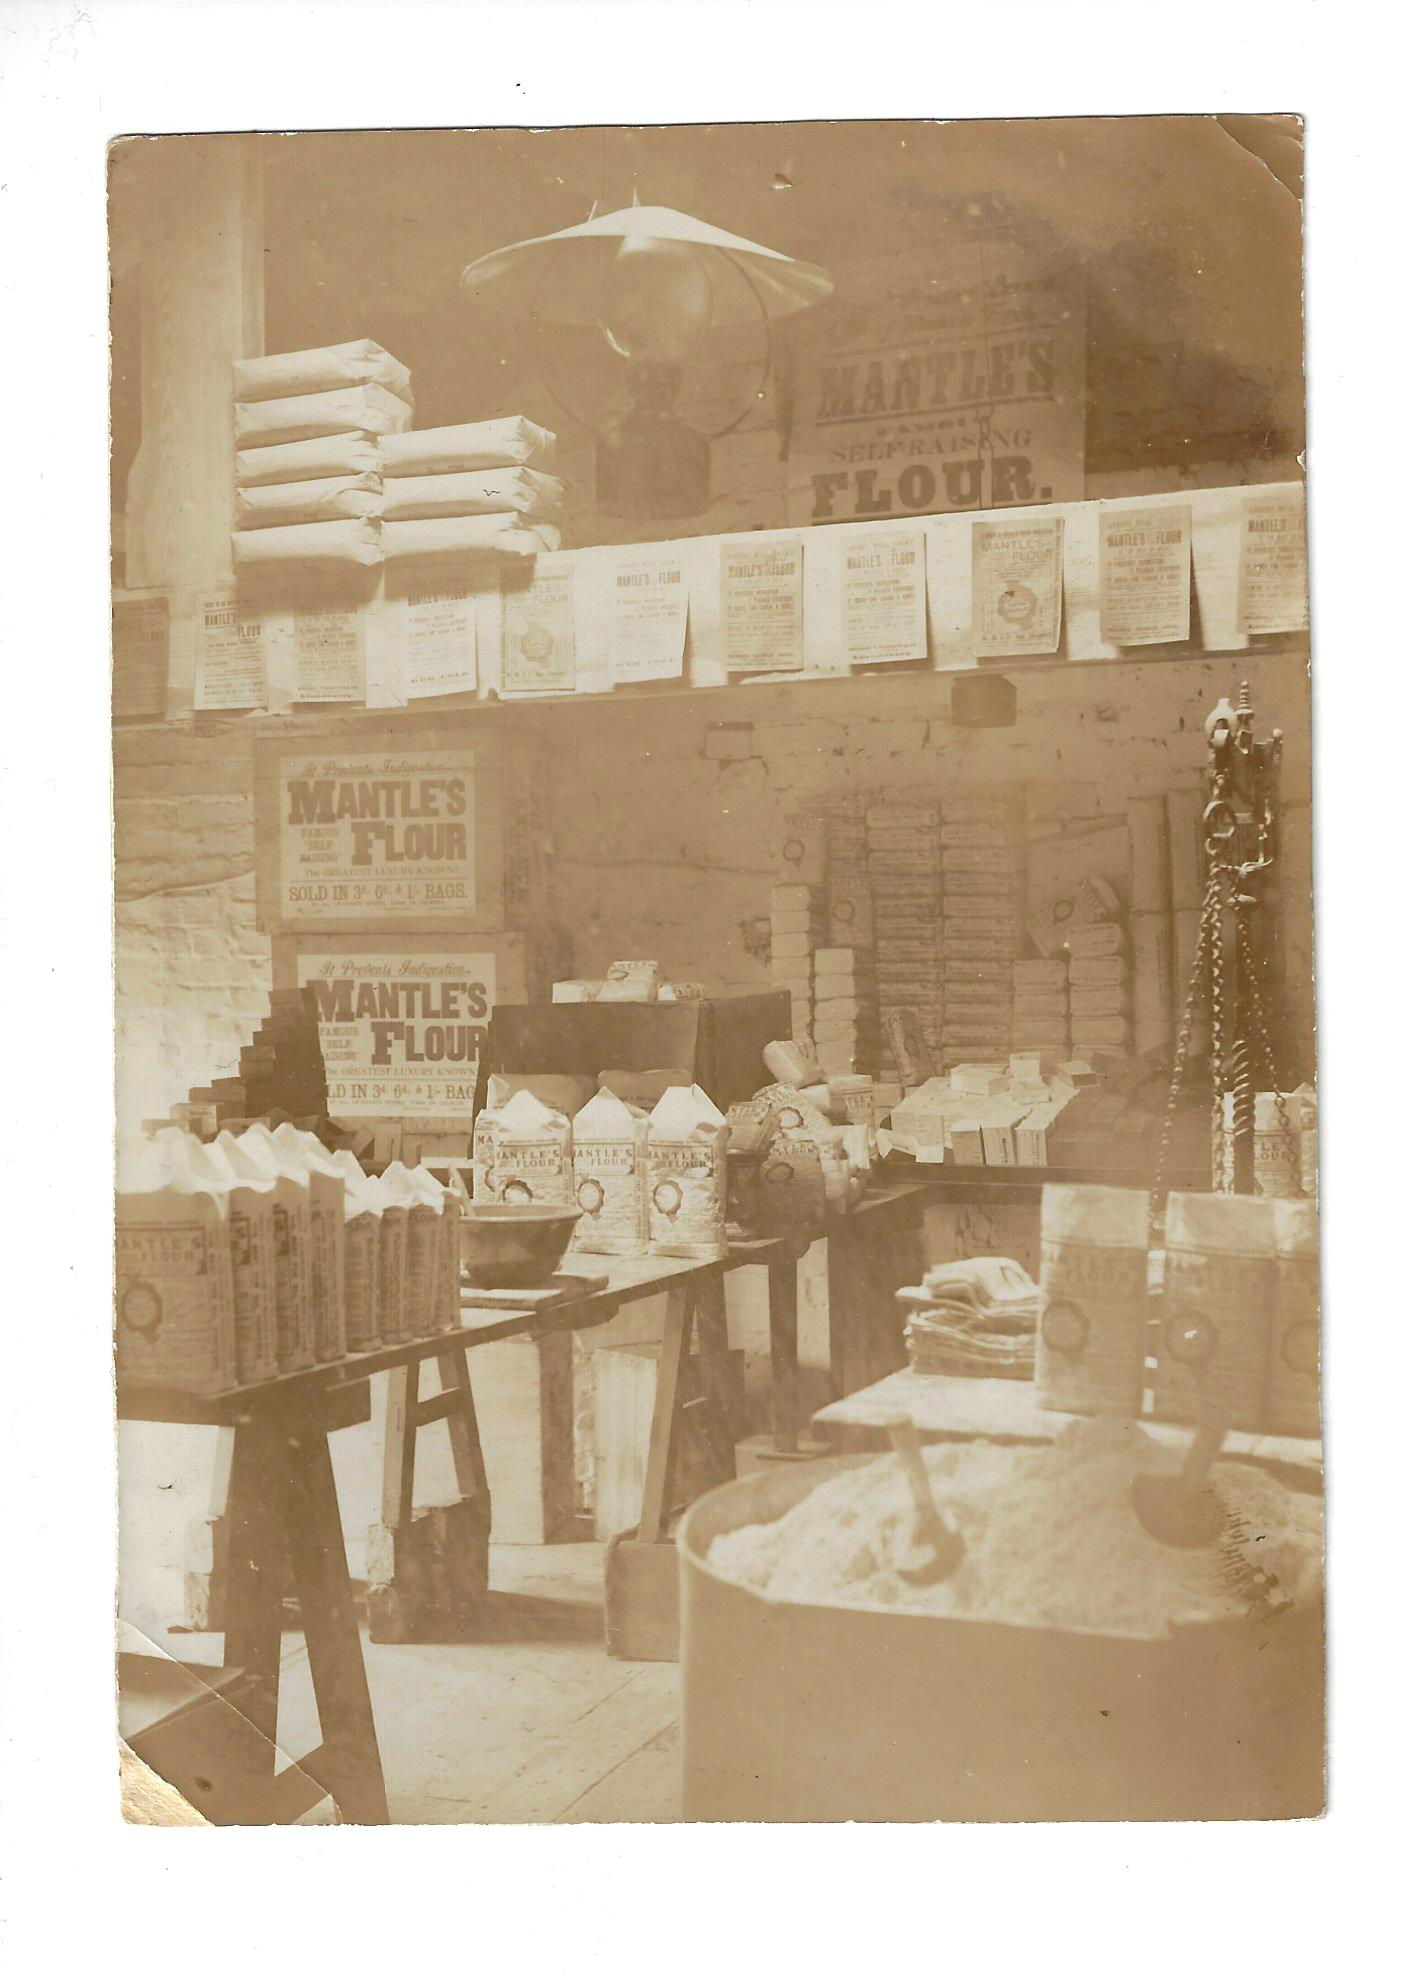 Mantles Flour interior photo